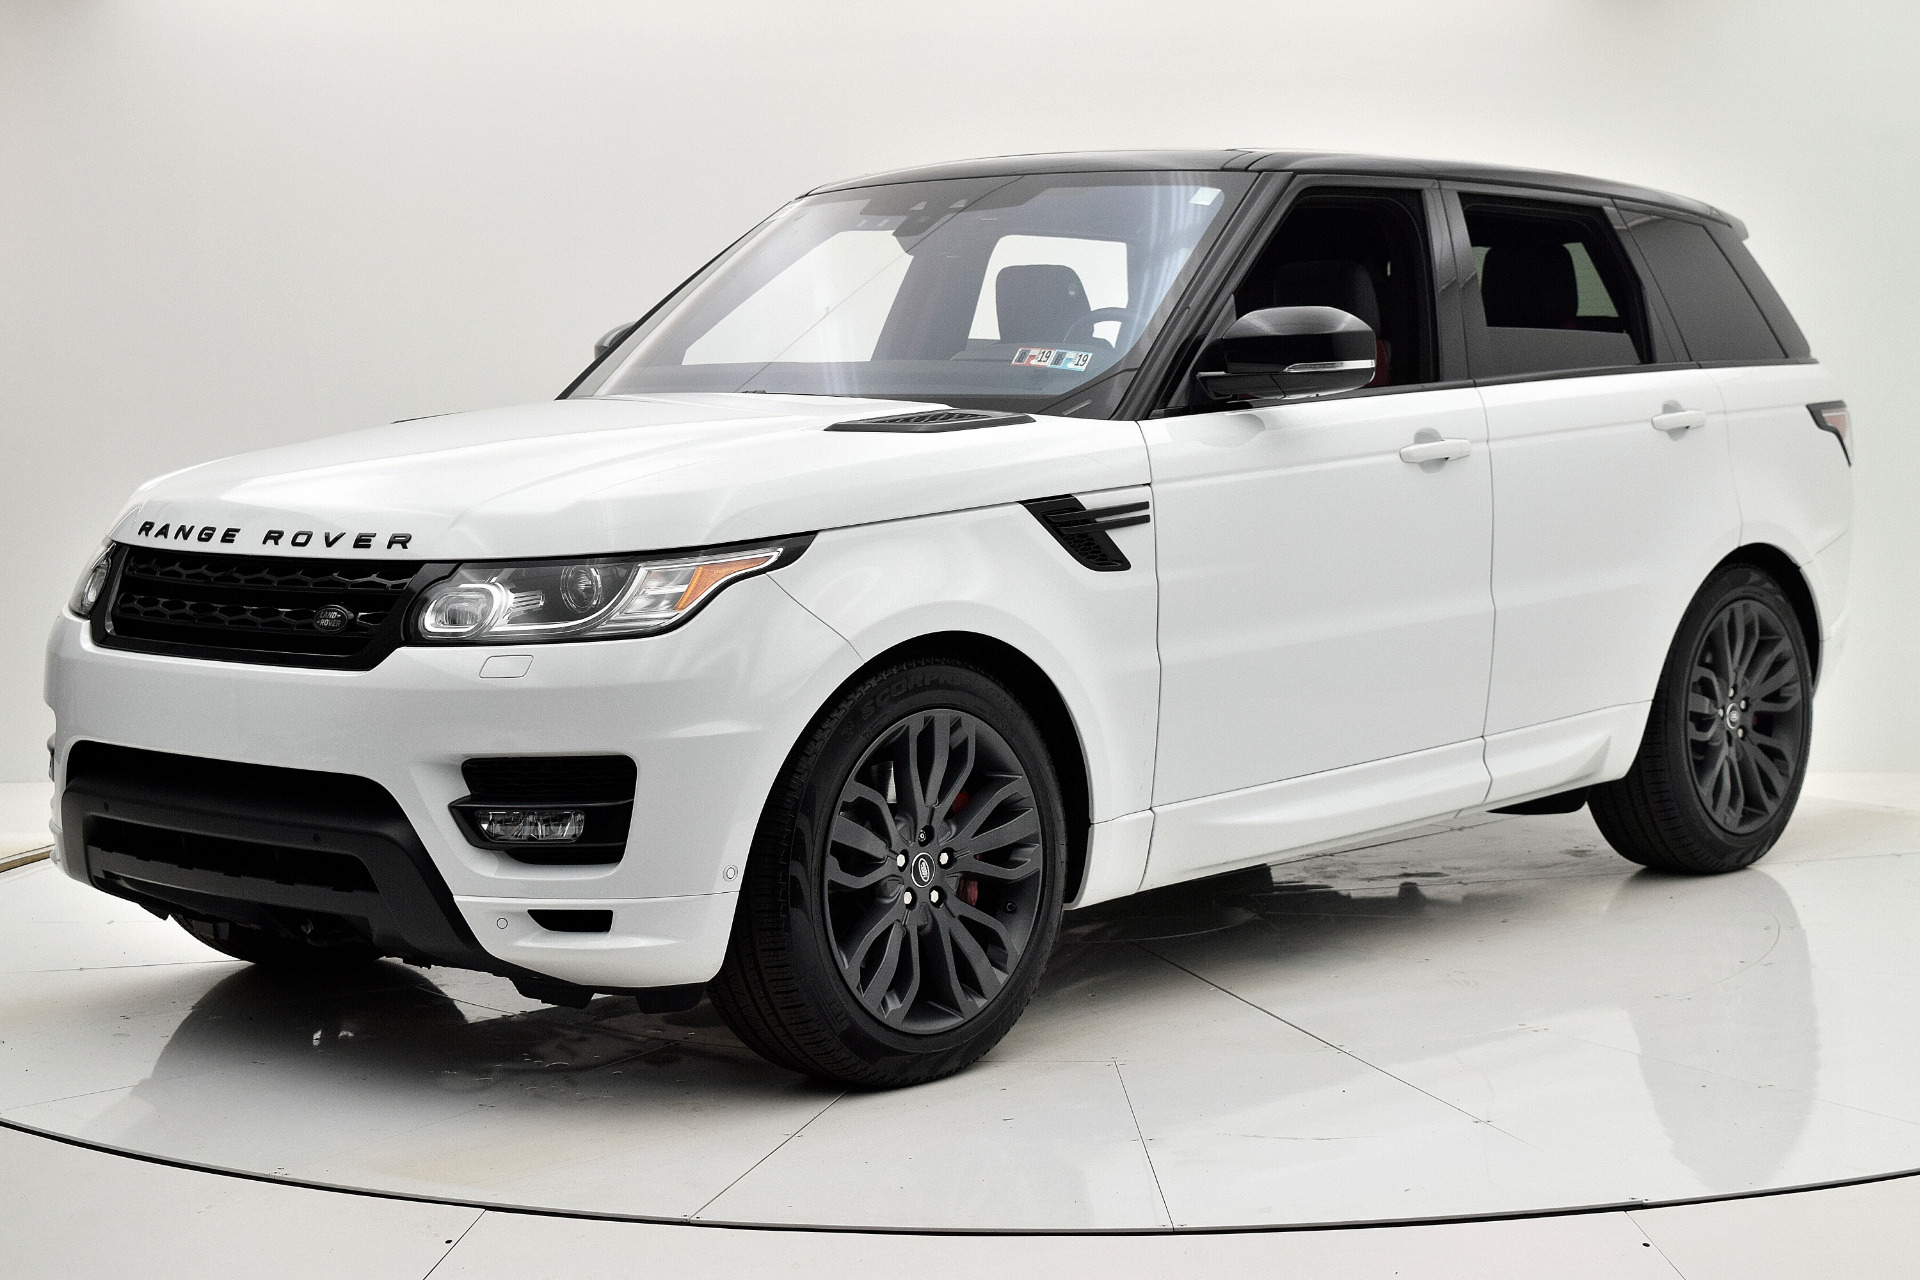 Used 2017 Land Rover Range Rover Sport HSE Dynamic for sale Sold at F.C. Kerbeck Aston Martin in Palmyra NJ 08065 2